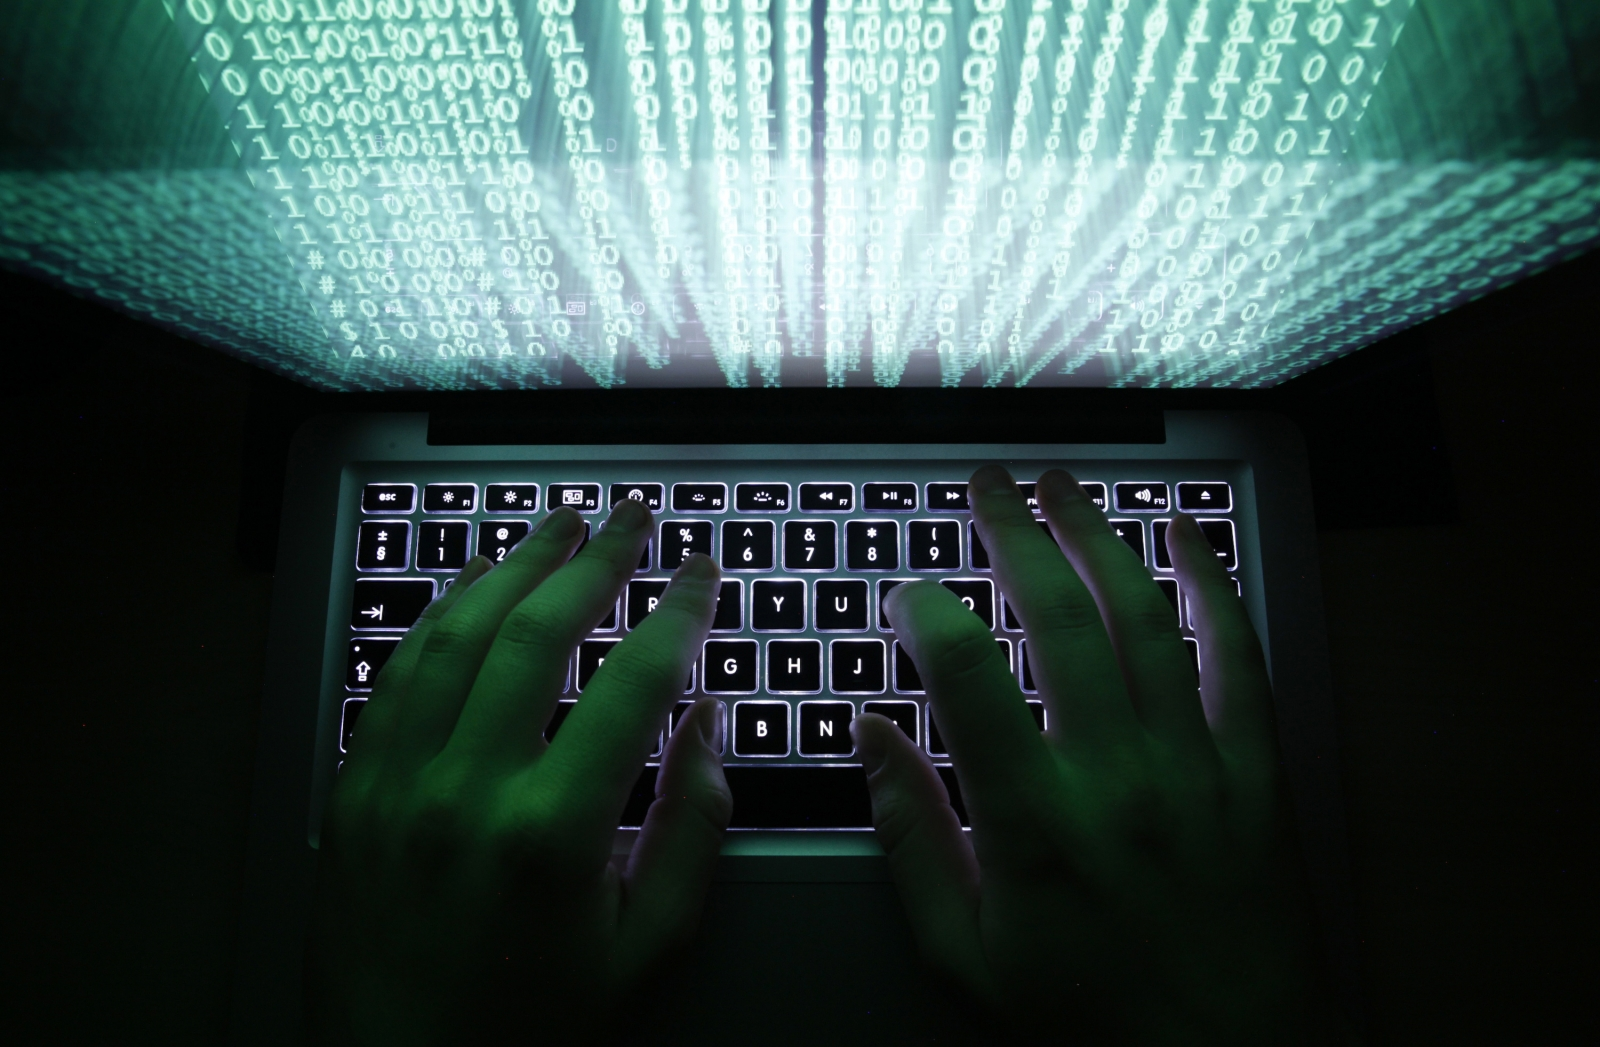 Teen hacker allegedly gained control over and stole trove of data from hundreds of US government servers